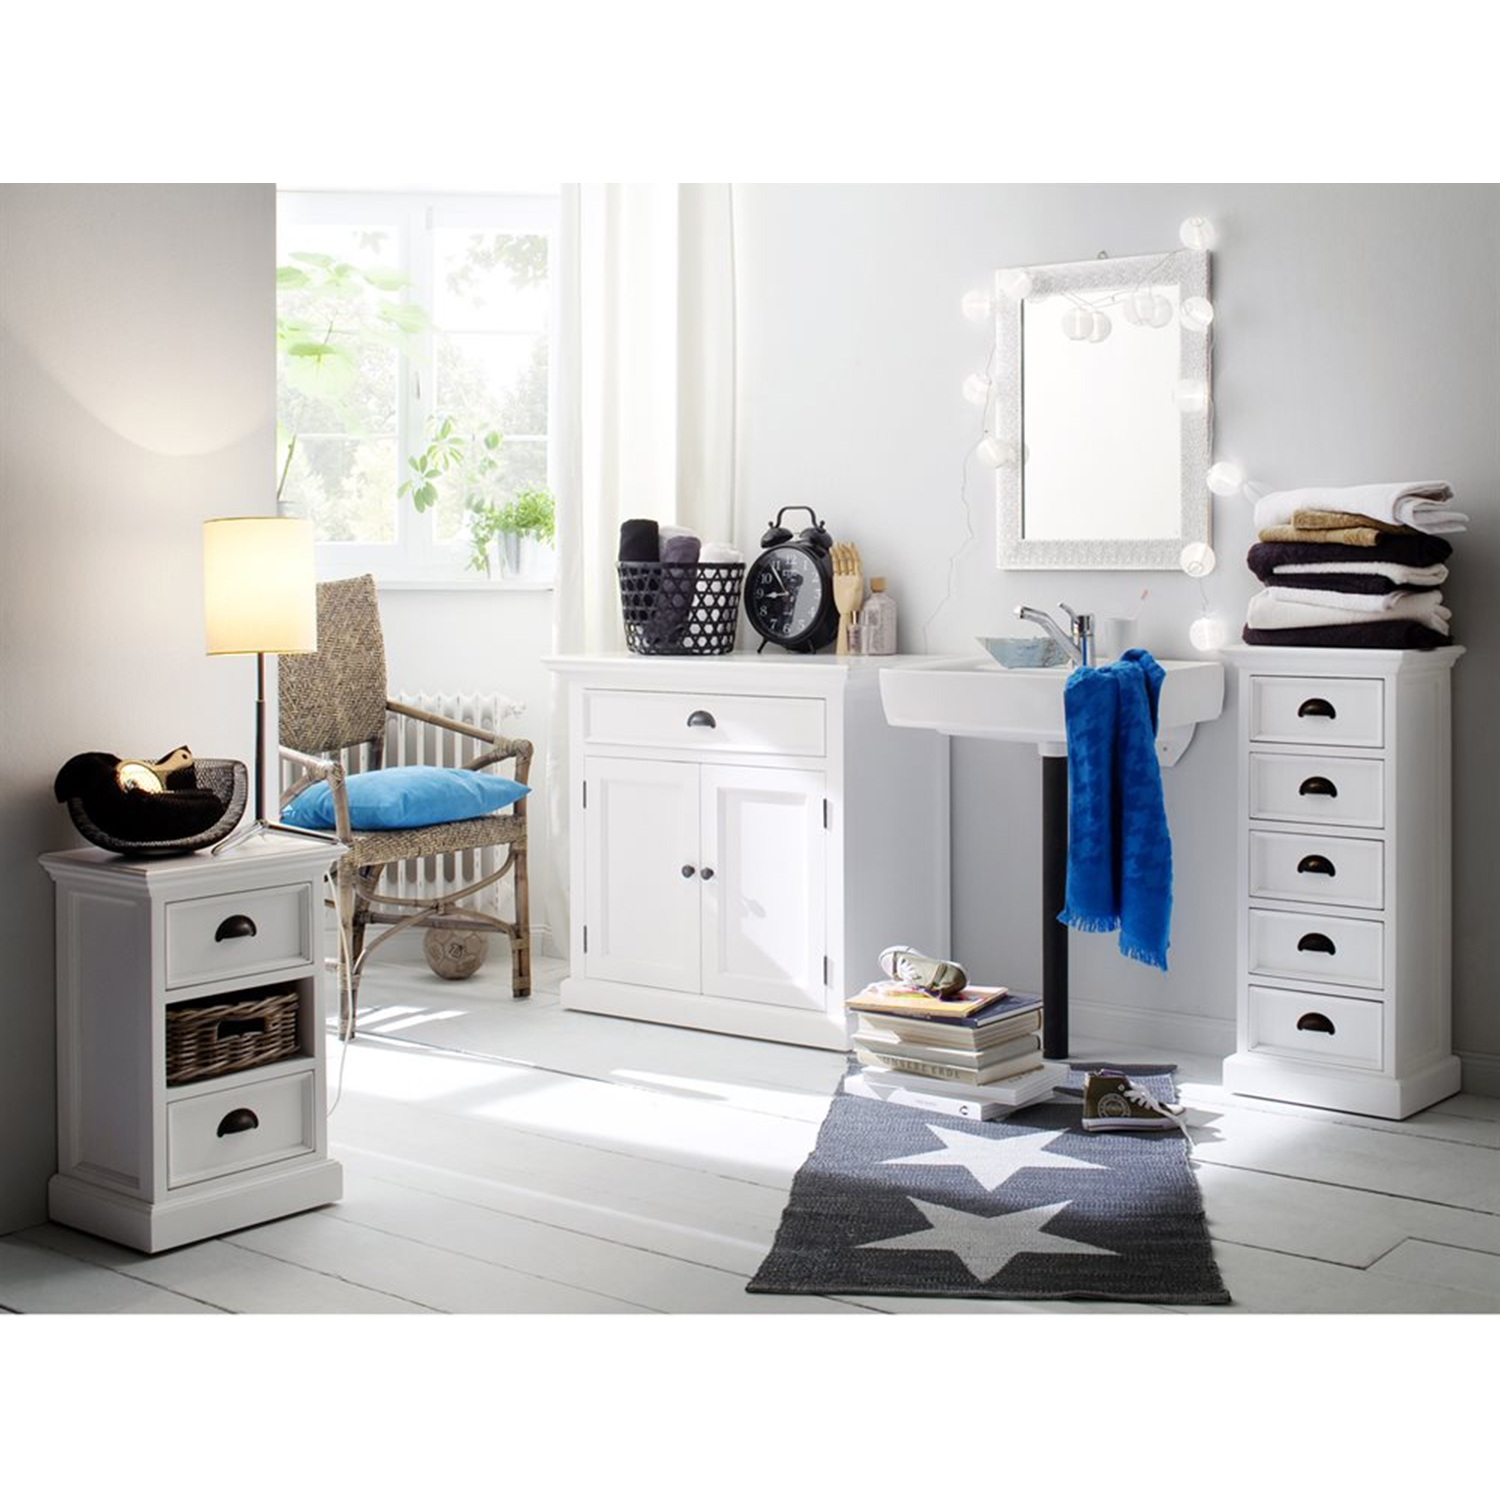 Halifax Bedside Storage Unit with Basket - Pure White - NSOLO-CA585